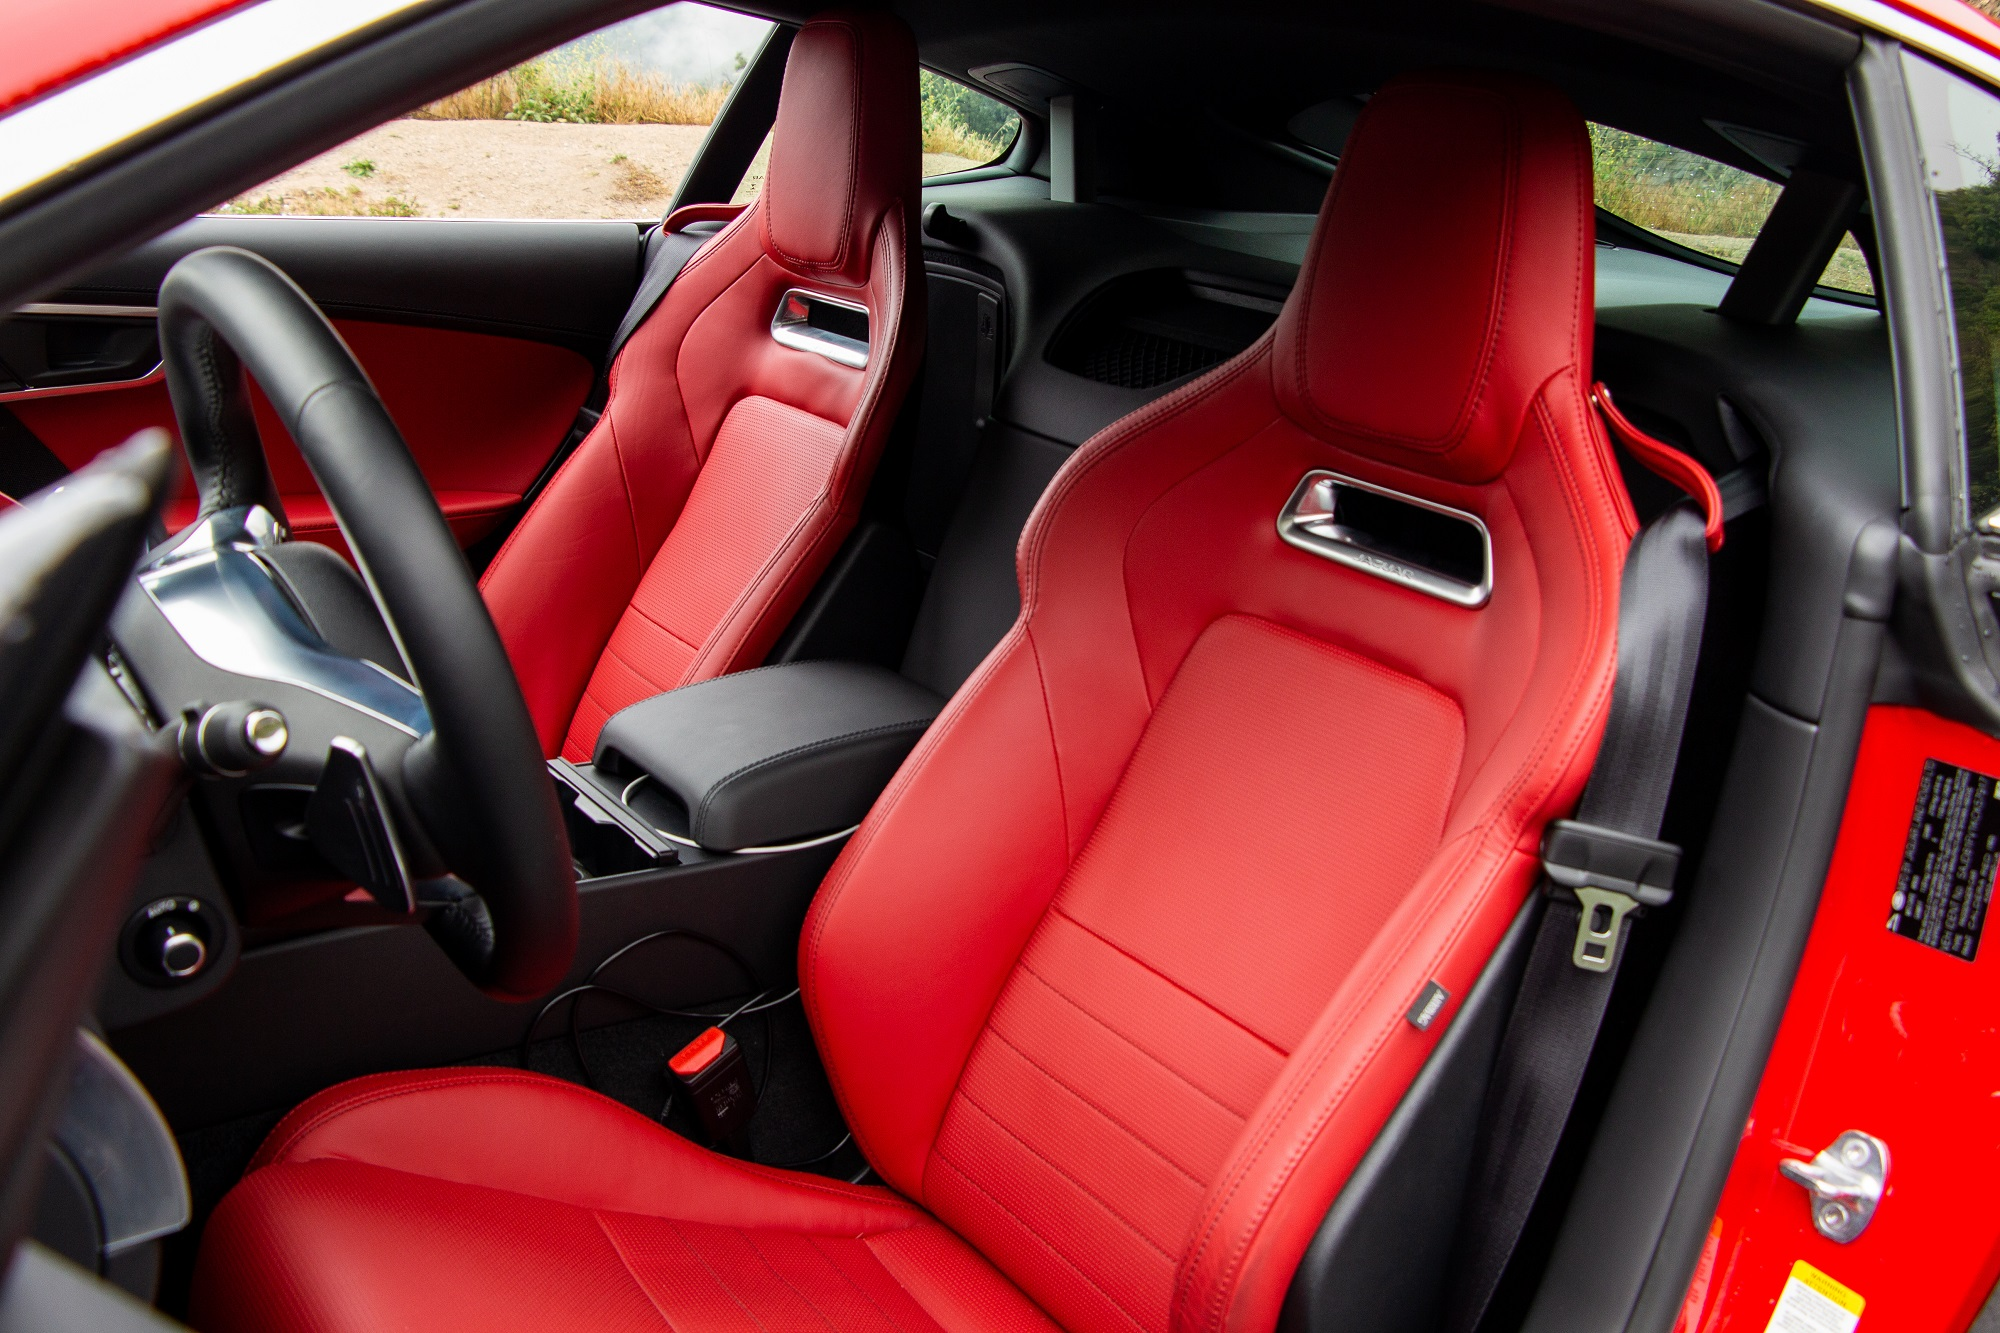 Jaguar F-TYPE Coupe P380 Supercharged V6 Engine Interior Exterior Colors Options Jake Stumph